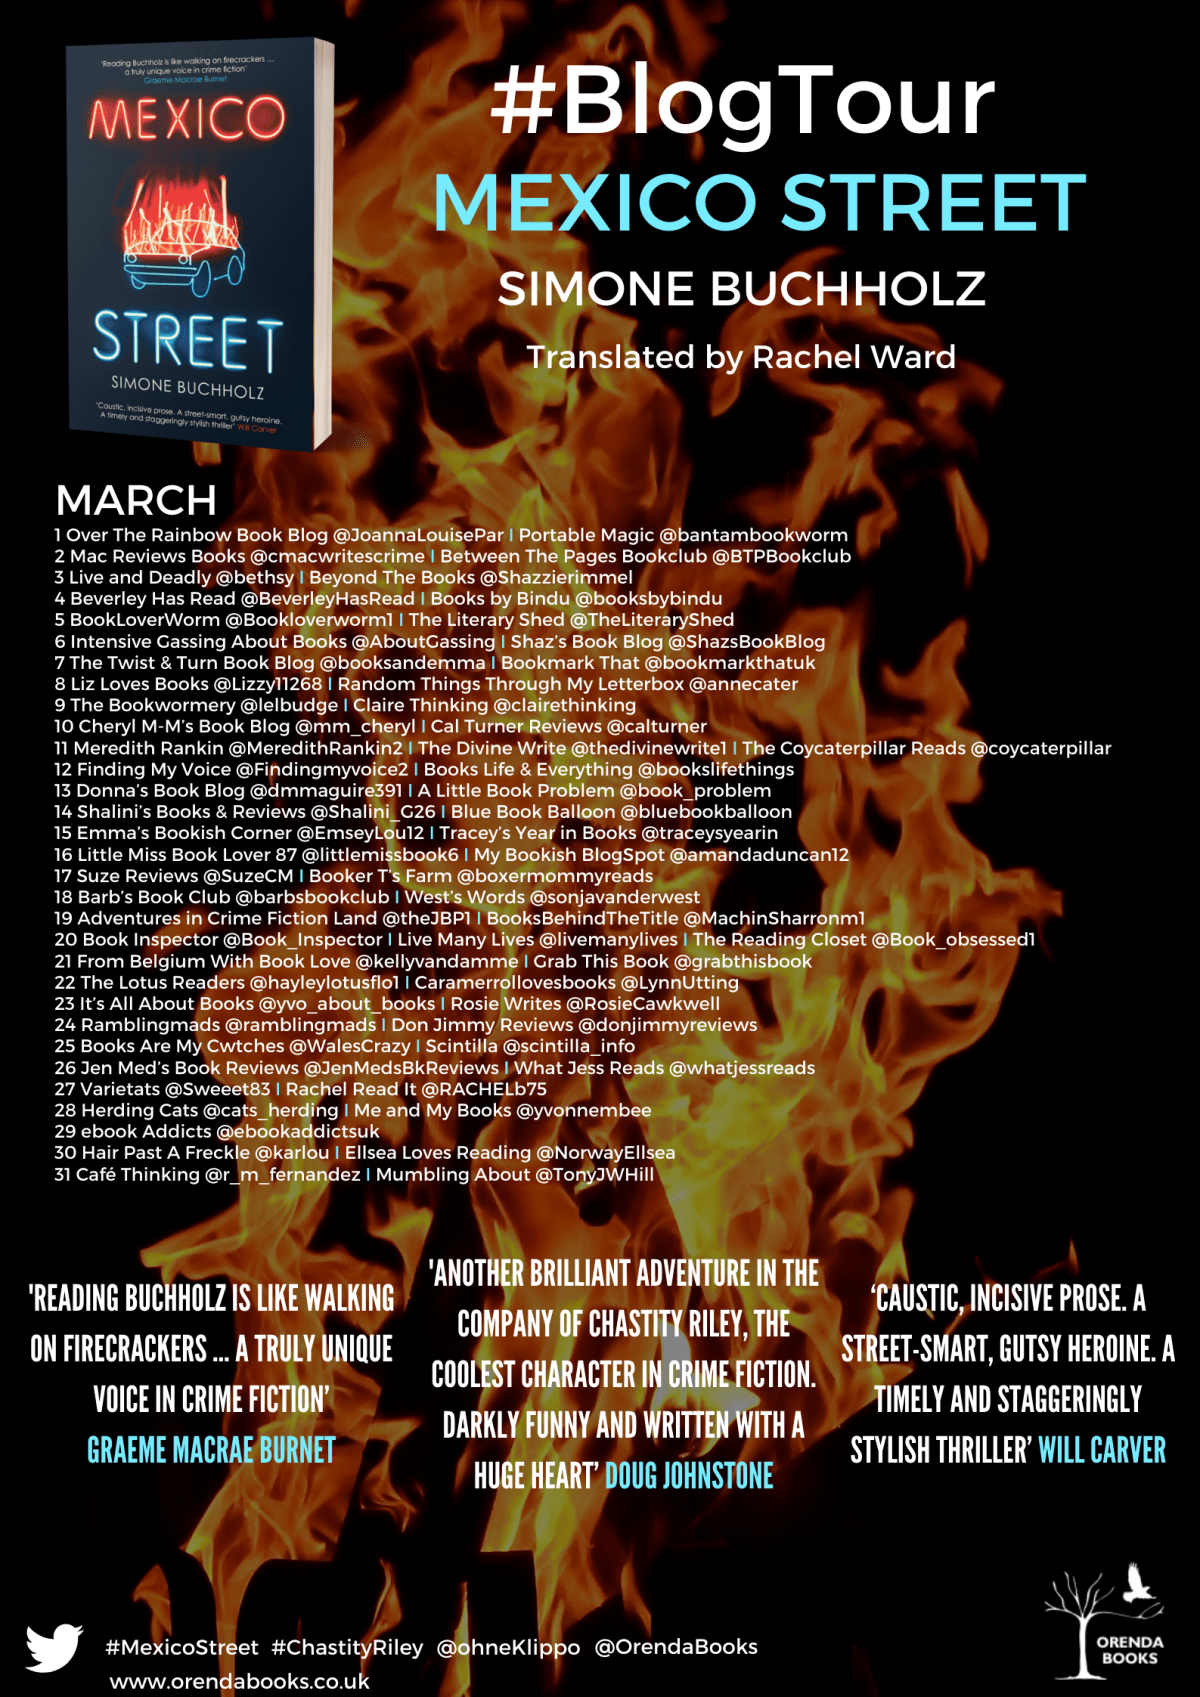 Mexico Street BT Poster - Blog Tour: Mexico Street (Chas Riley #8) by Simone Buchholz